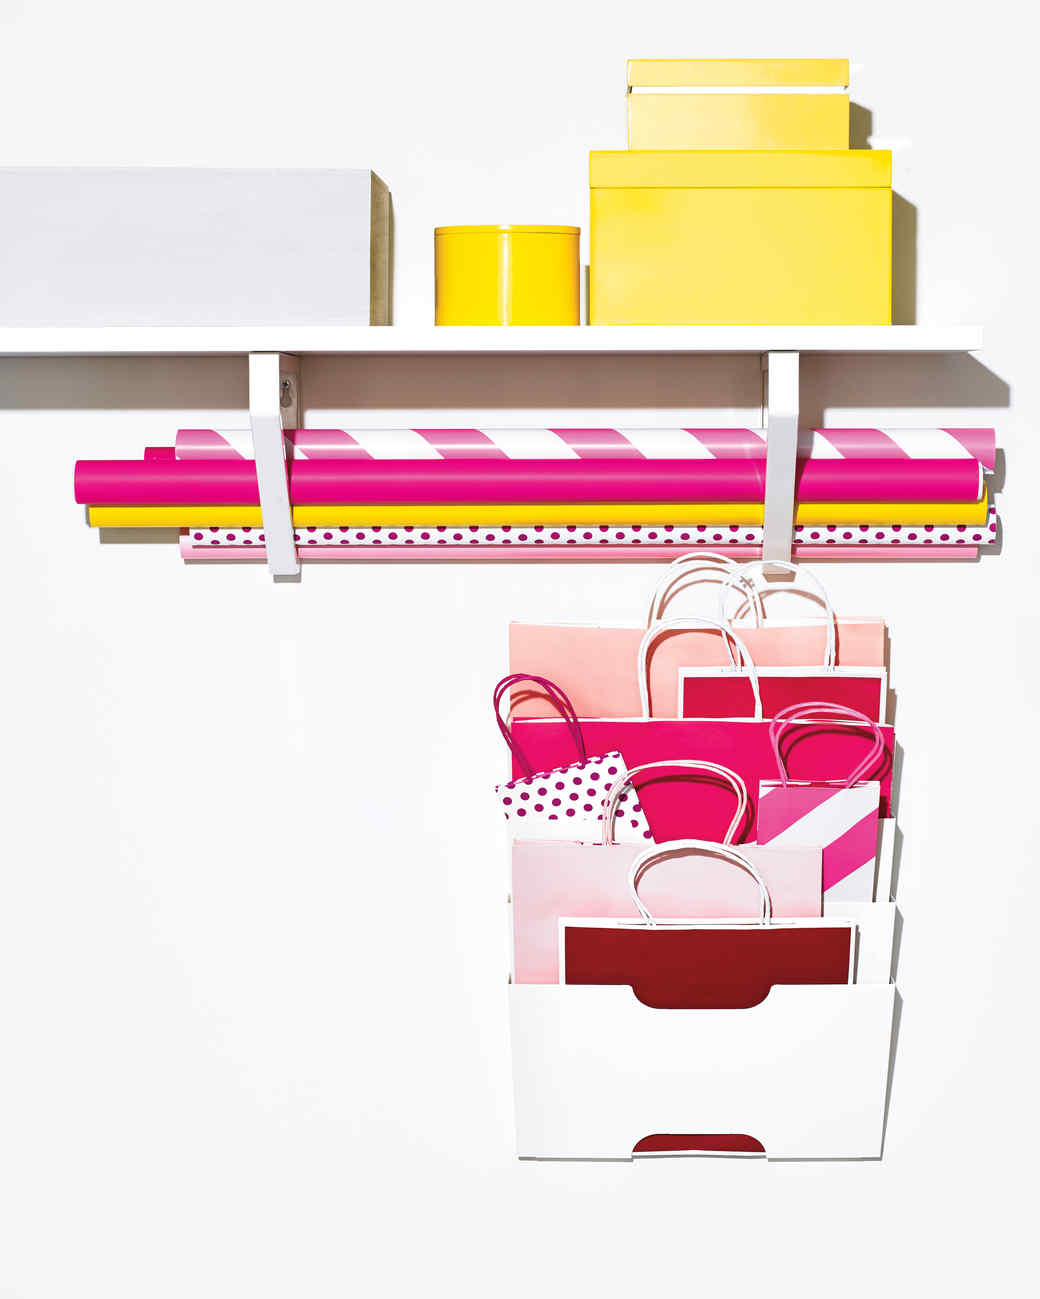 wrapping-paper-gift-bag-storage-248-d111605.jpg